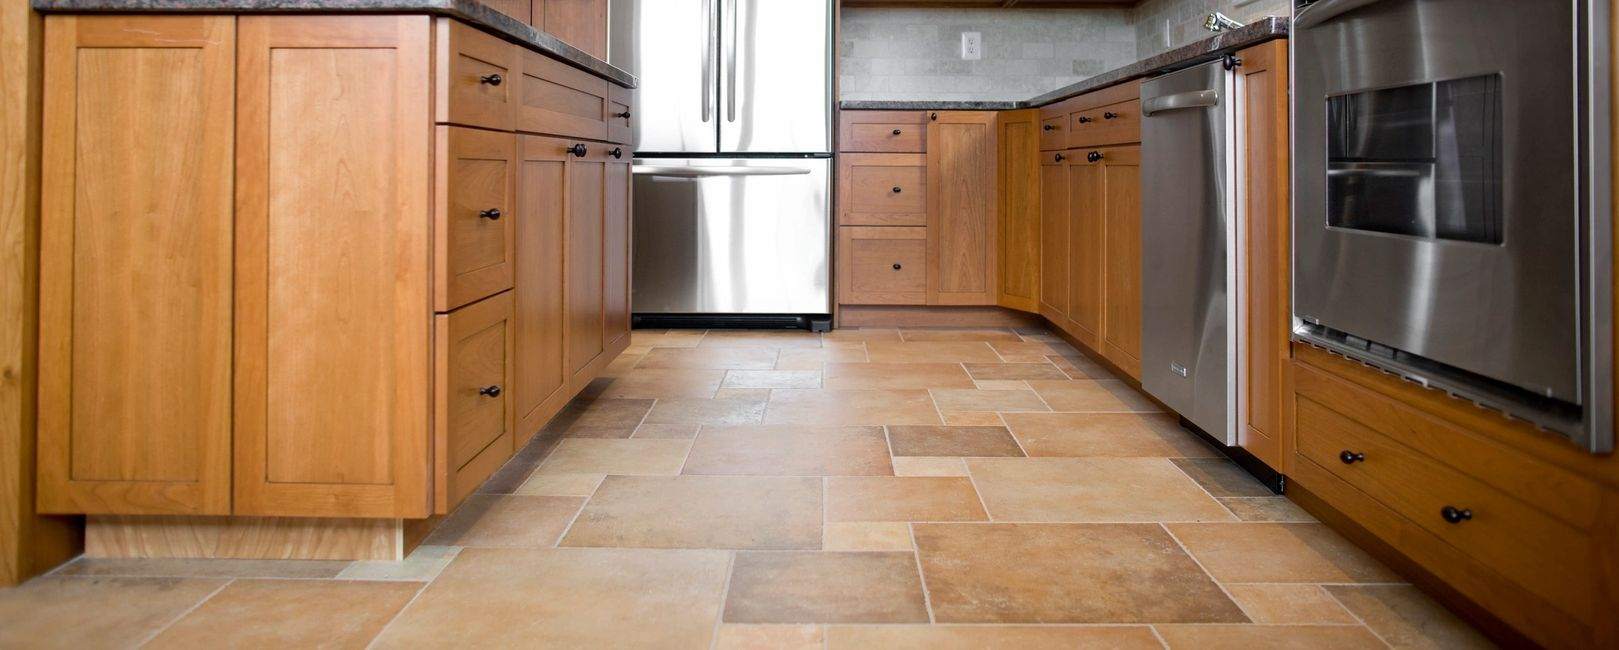 Tile and grout cleaning, tampa tile cleaning, grout cleaning, Floor cleaning, tile & grout sealing